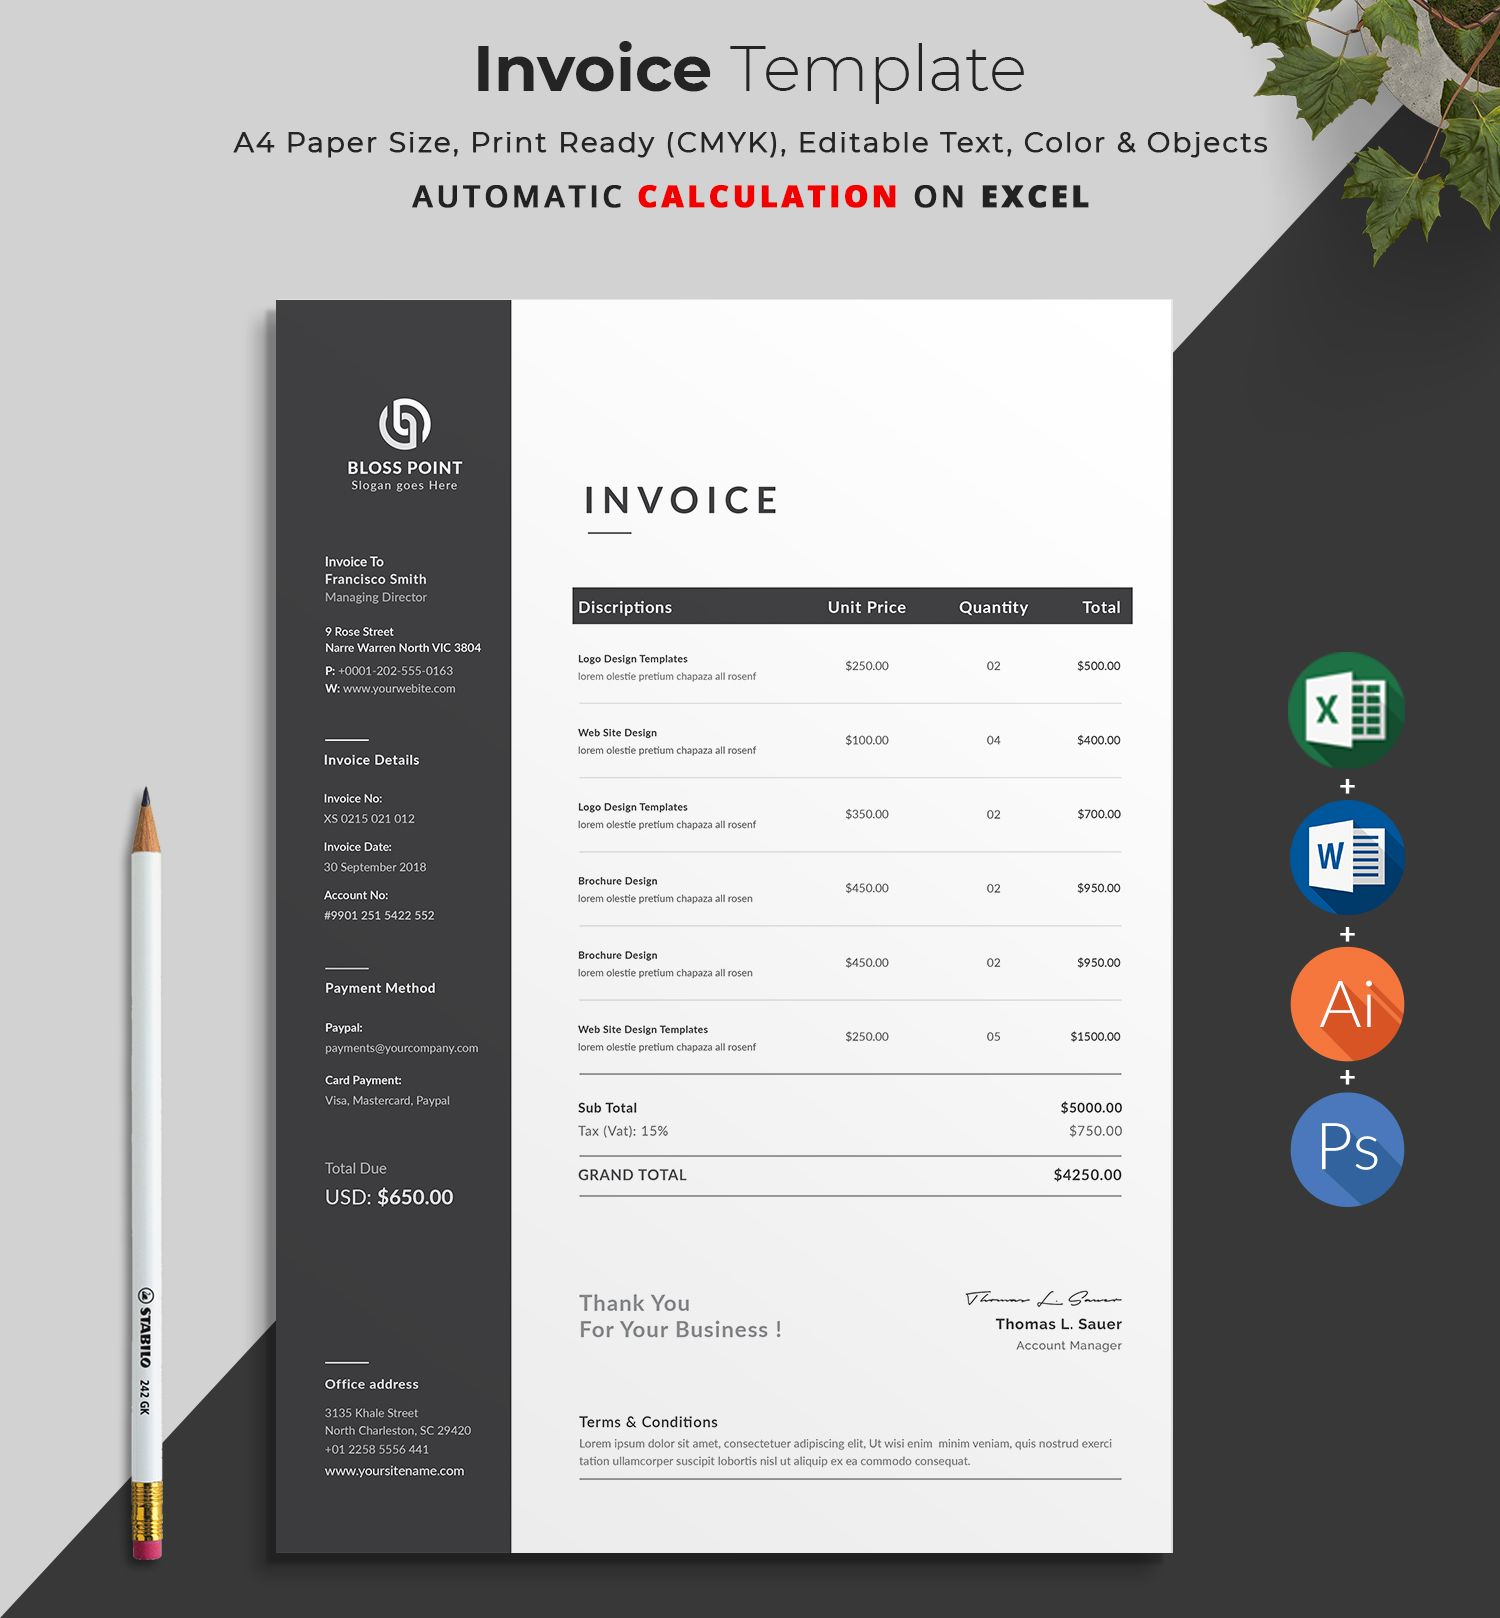 Invoice Template Invoice Design Ms Excel Auto Calculation Etsy In 2021 Invoice Design Photography Invoice Invoice Template